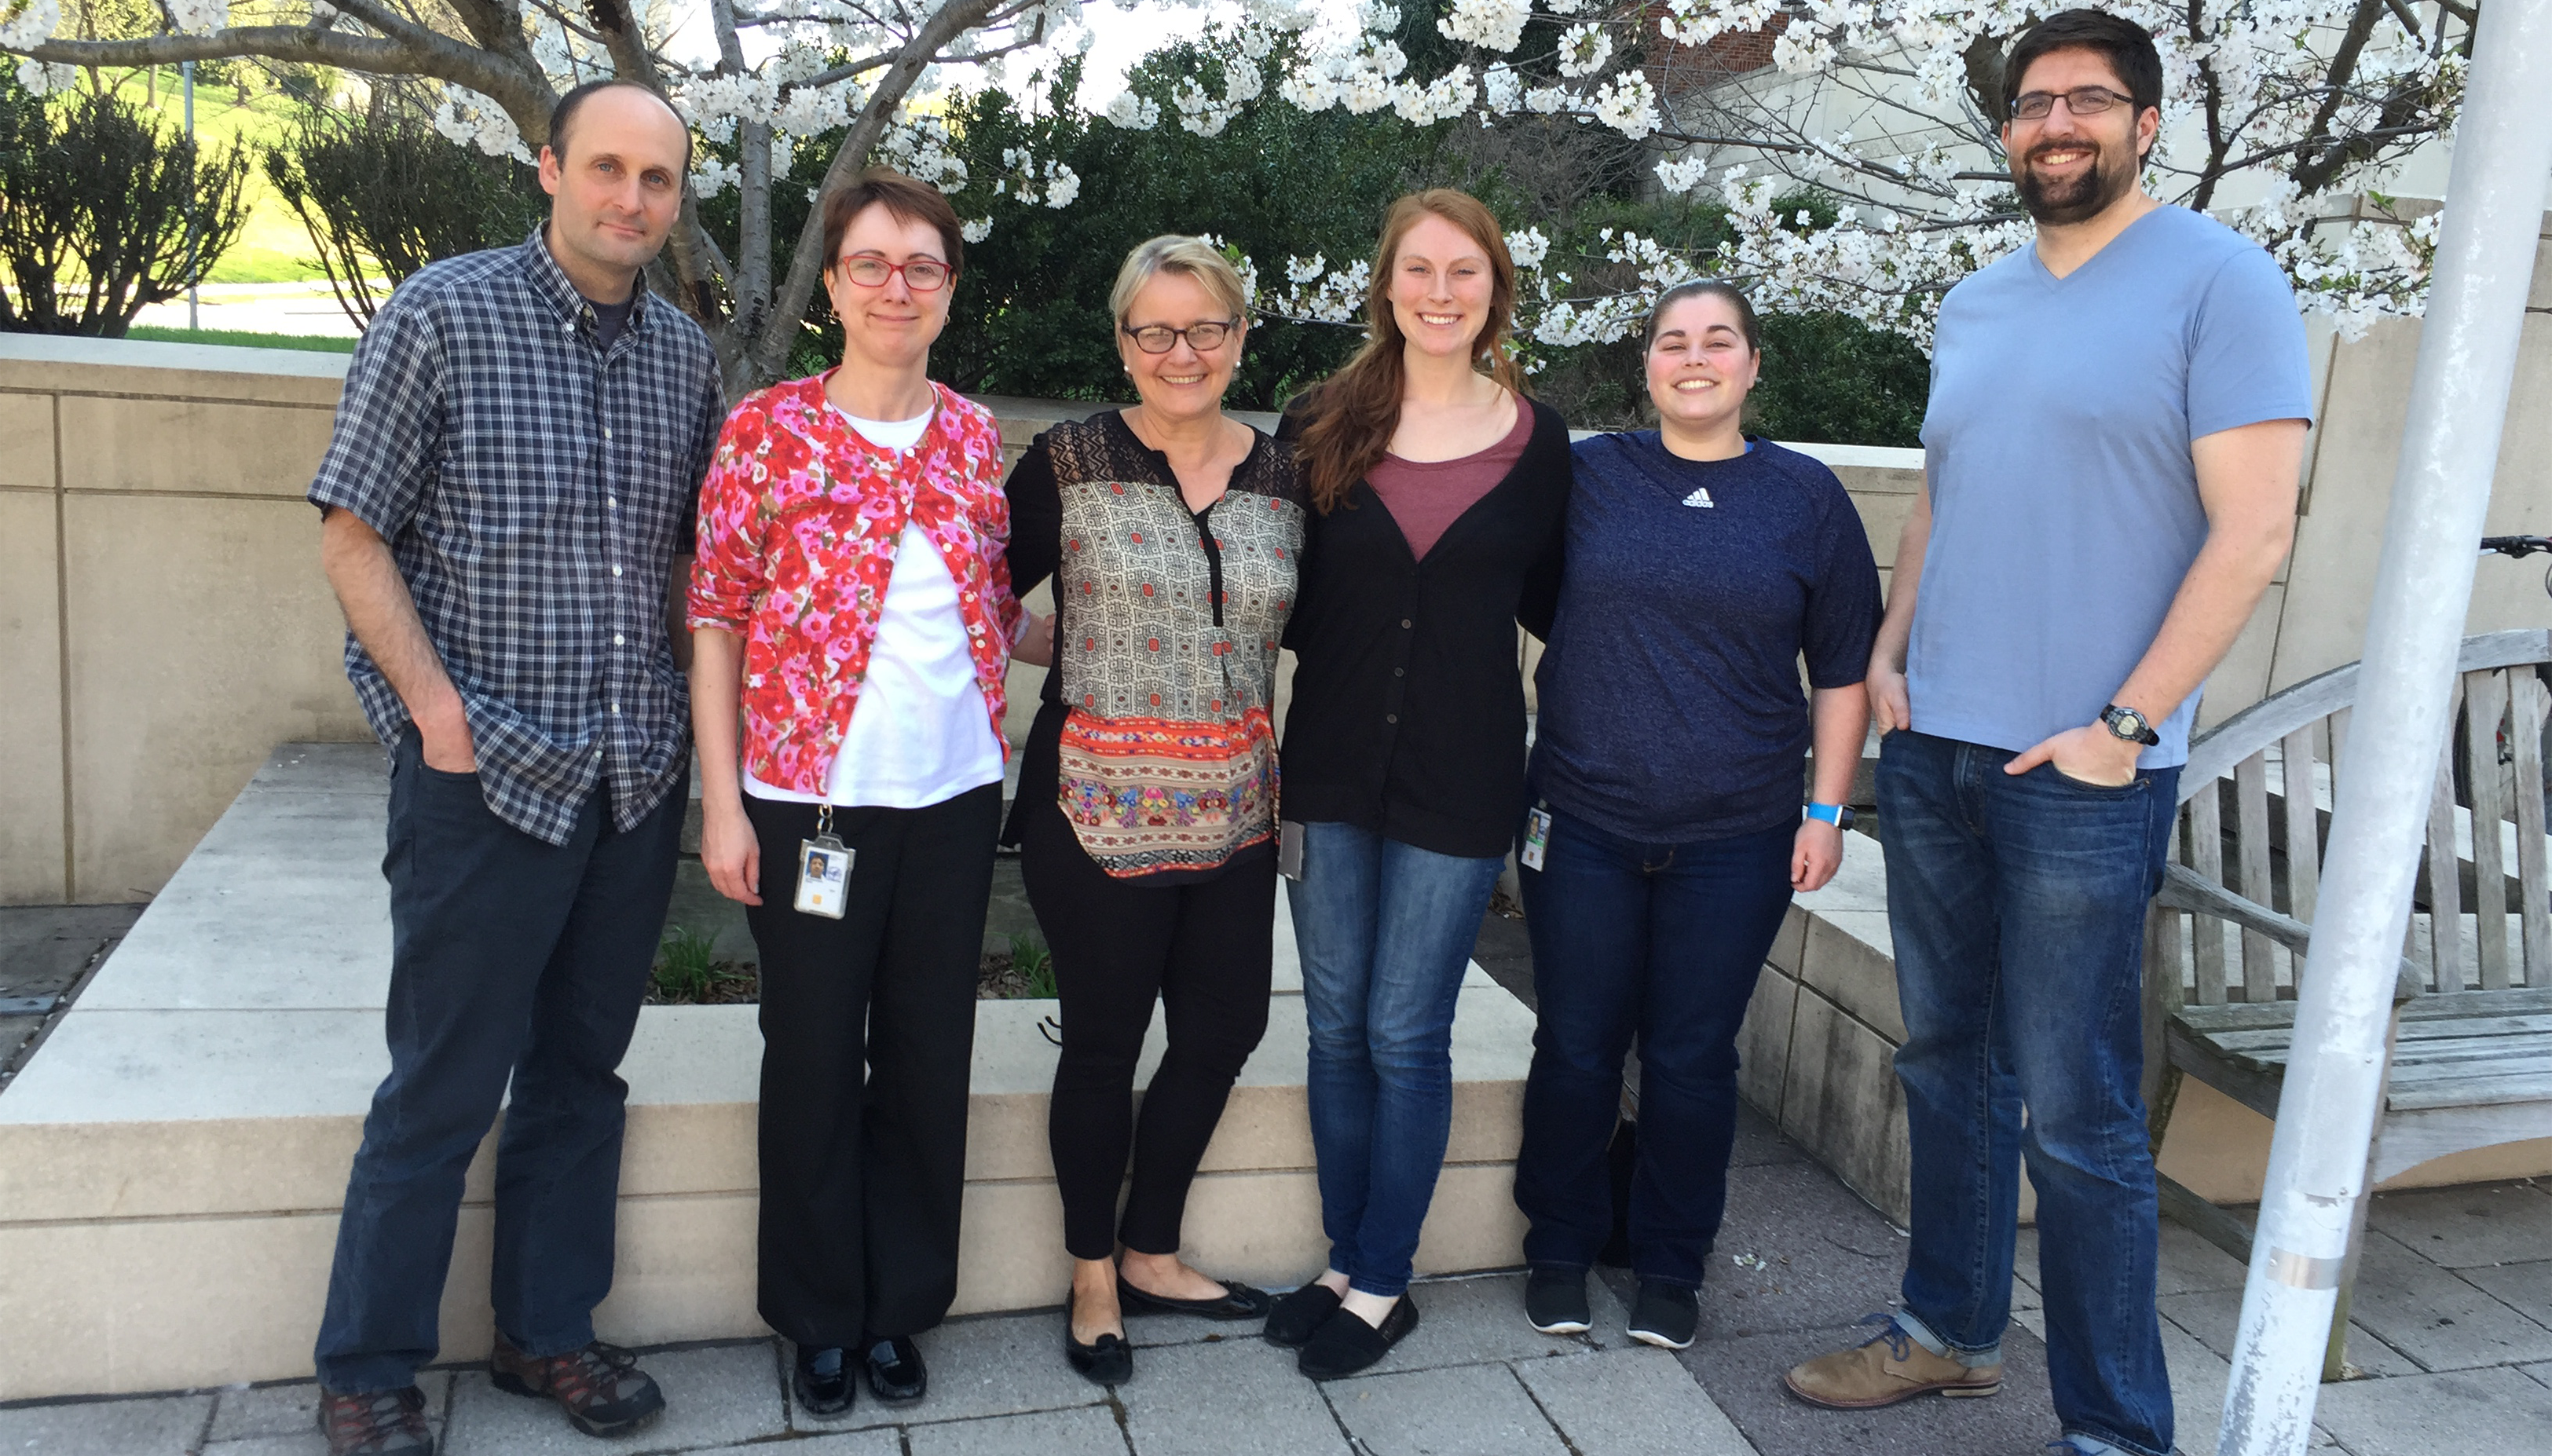 Kathryn Zoon and her lab colleagues at the National Institute of Allergy and Infectious Diseases